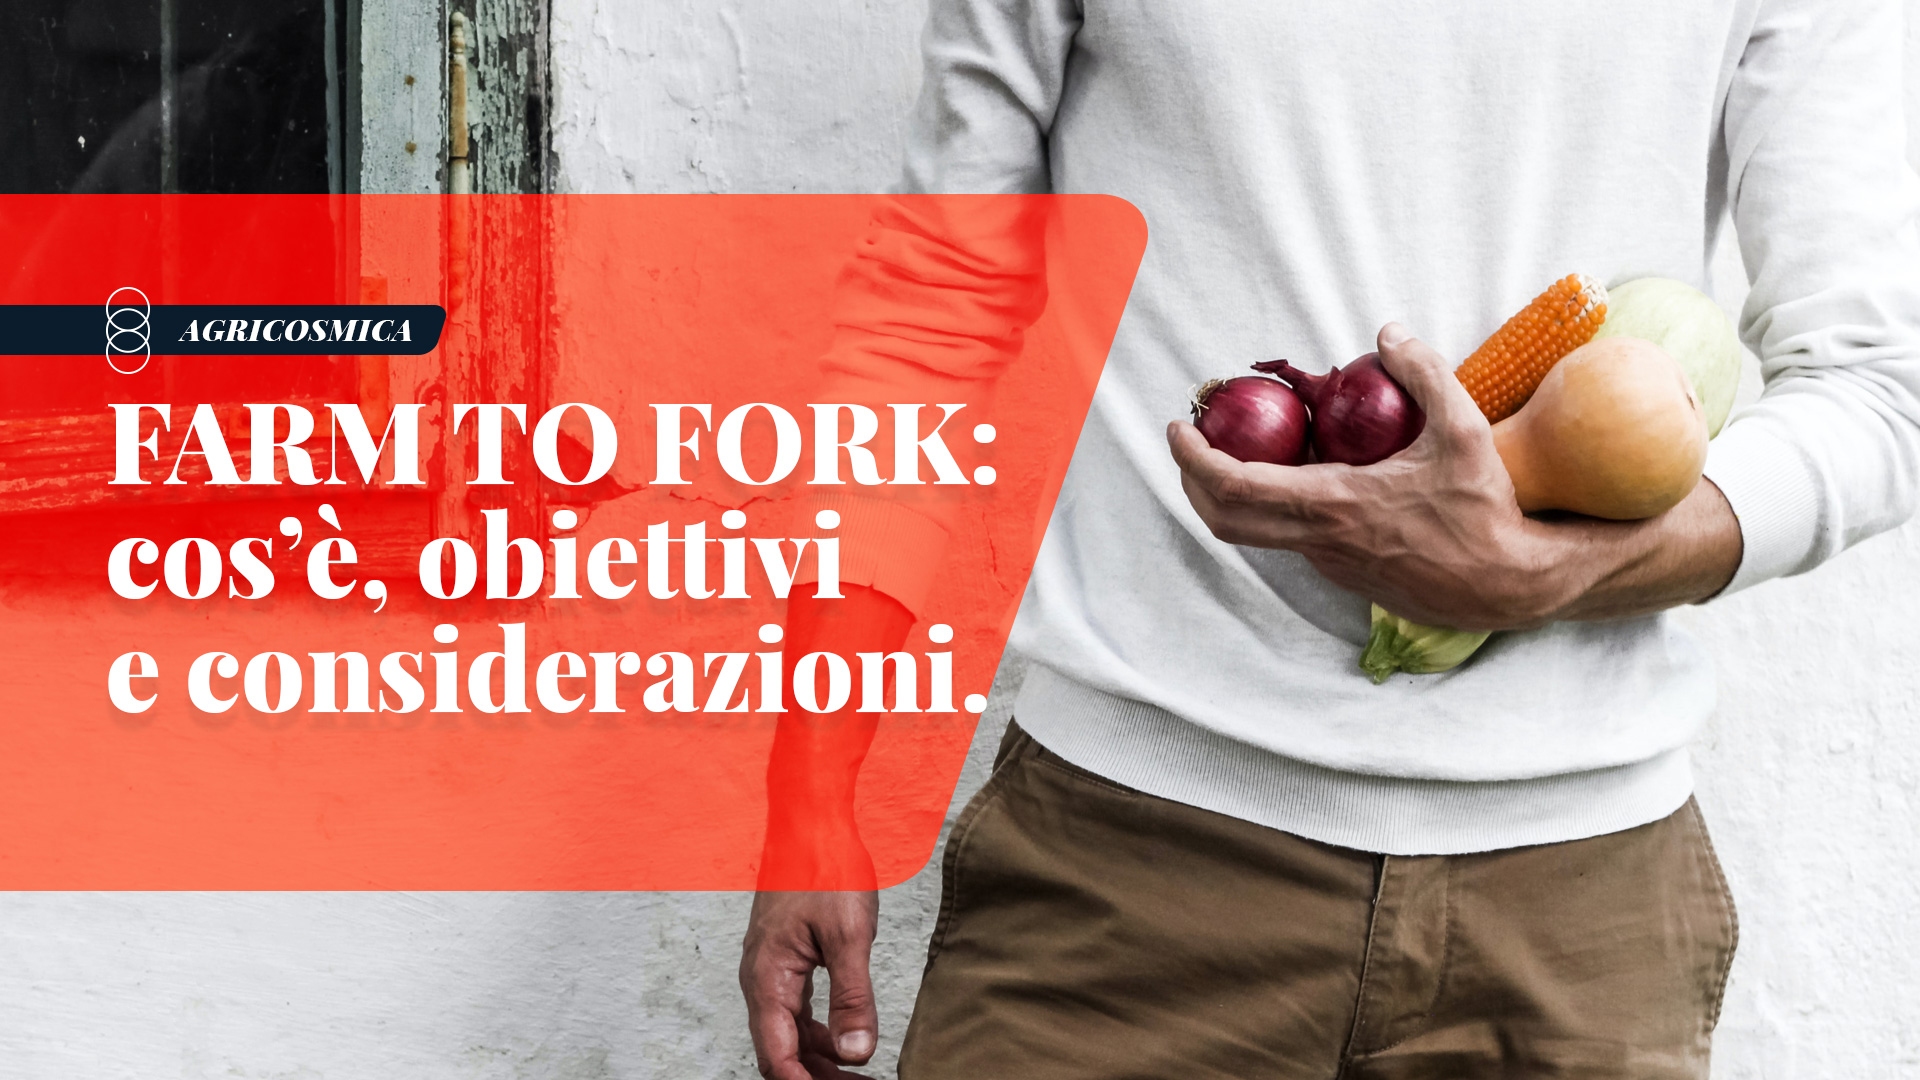 FARM TO FORK: 1 APP o UNA STRATEGIA EUROPEA?